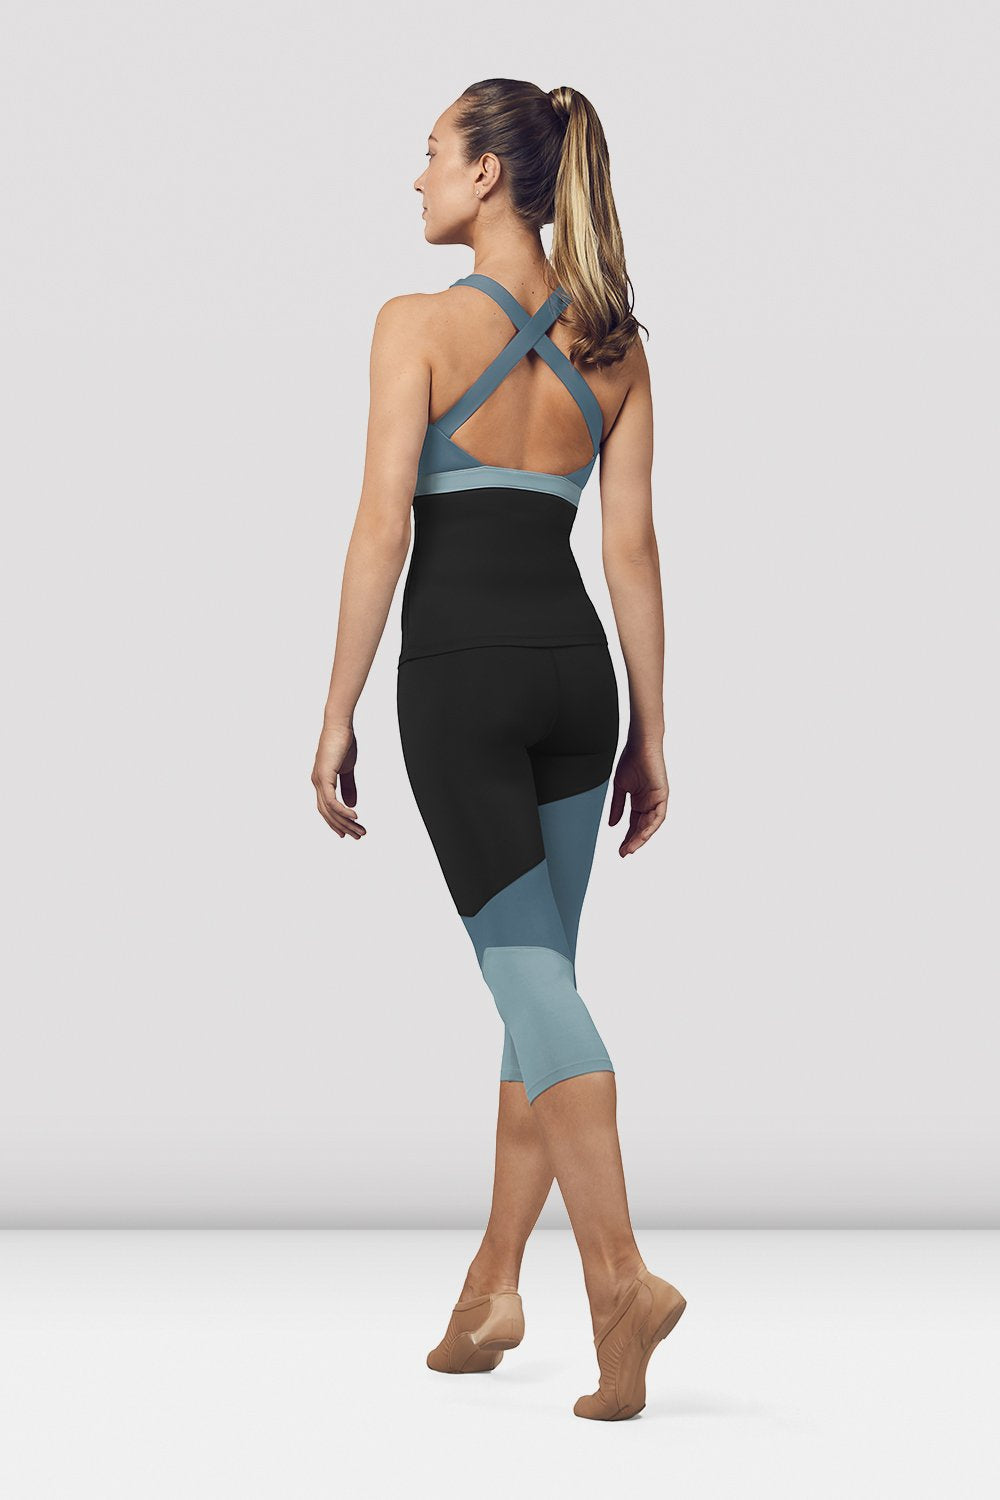 Seaport Bloch Ladies Color Panelled Capri Leggings on female model in parallel fourth position on releve facing back corner